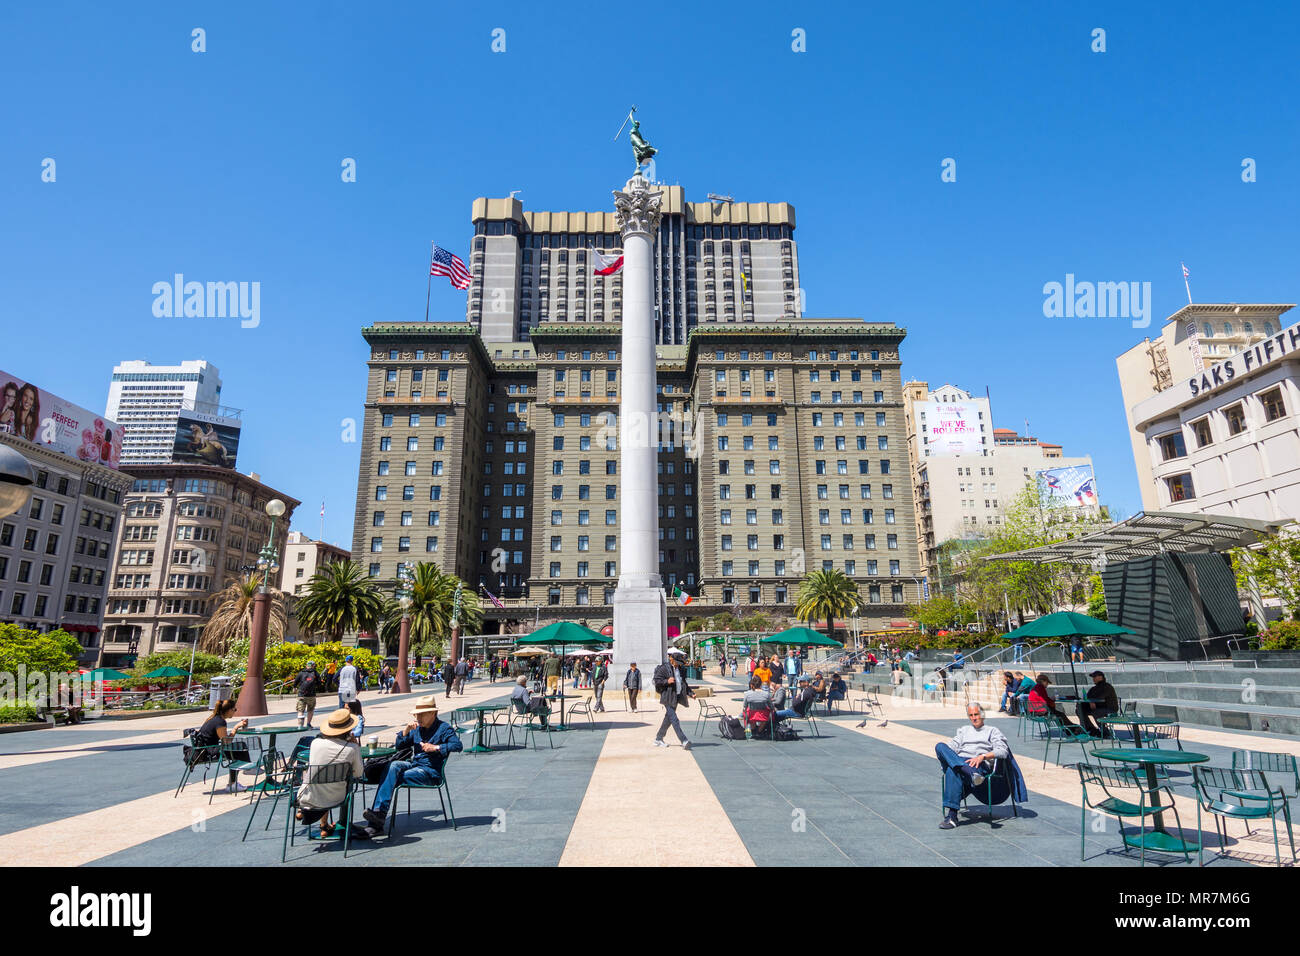 City dwellers relaxing in Union Square, San Francisco, CA, USA. - Stock Image